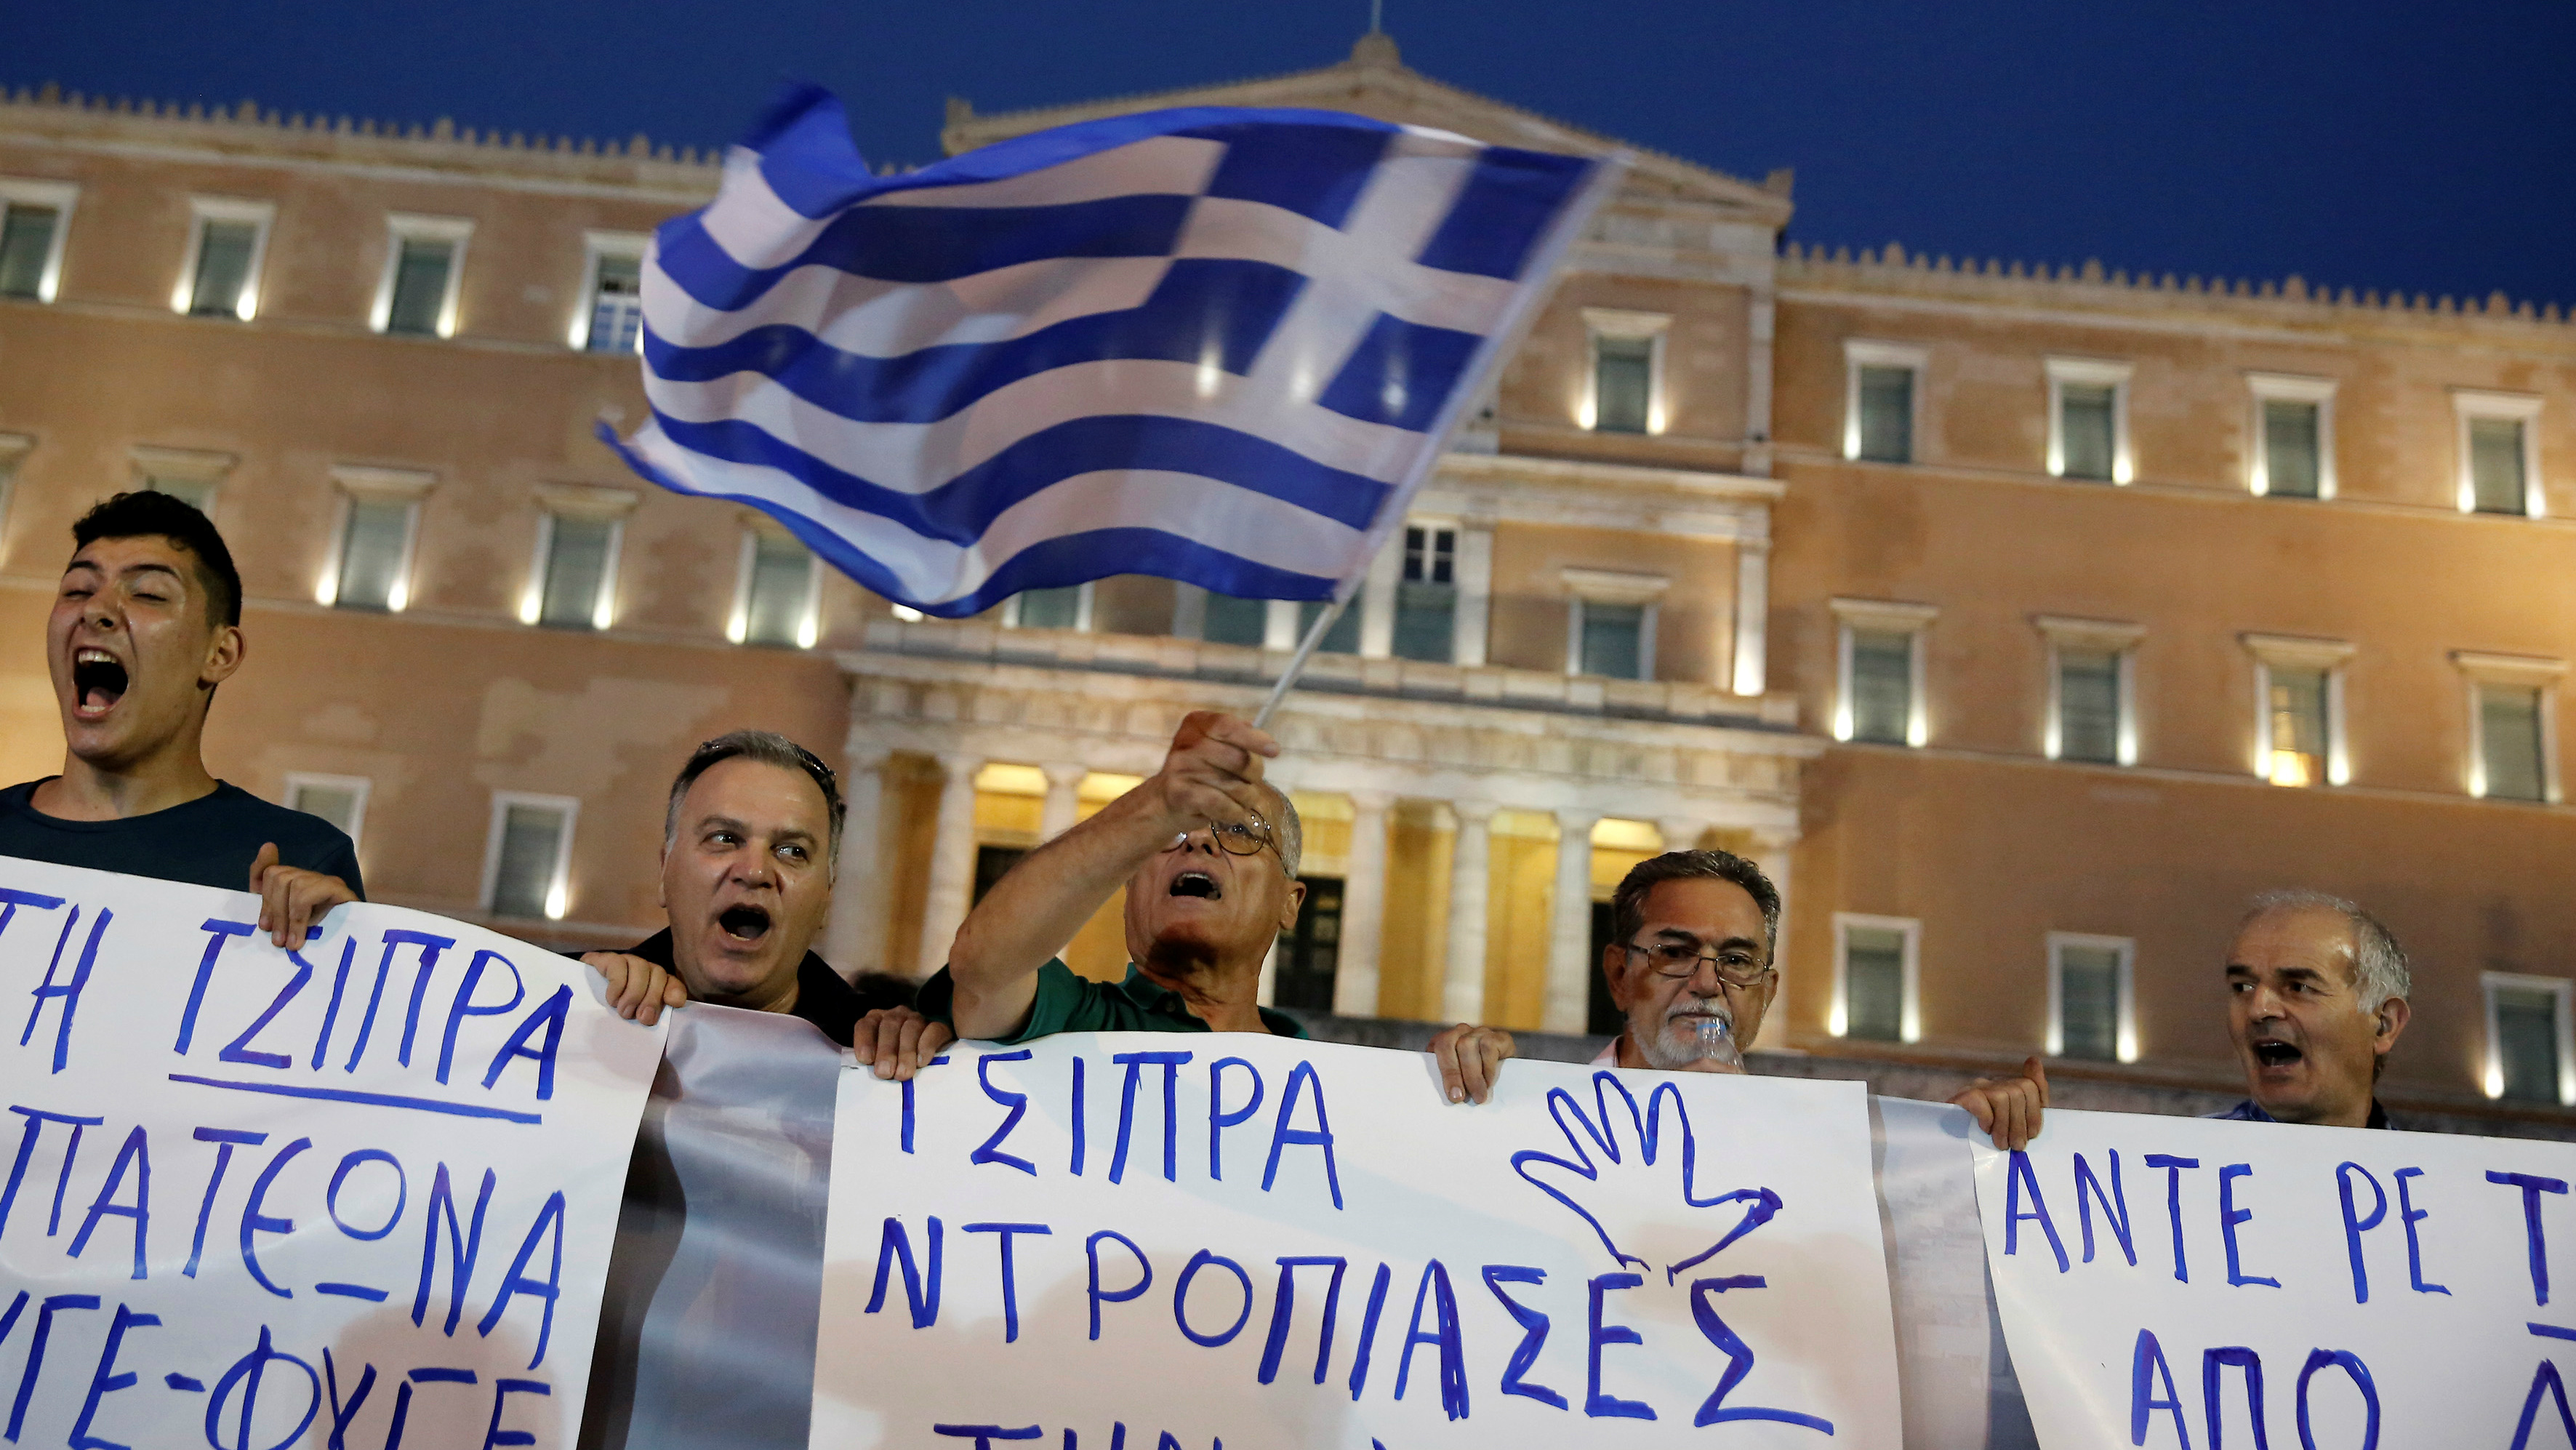 Protesters at a rally in Greece.